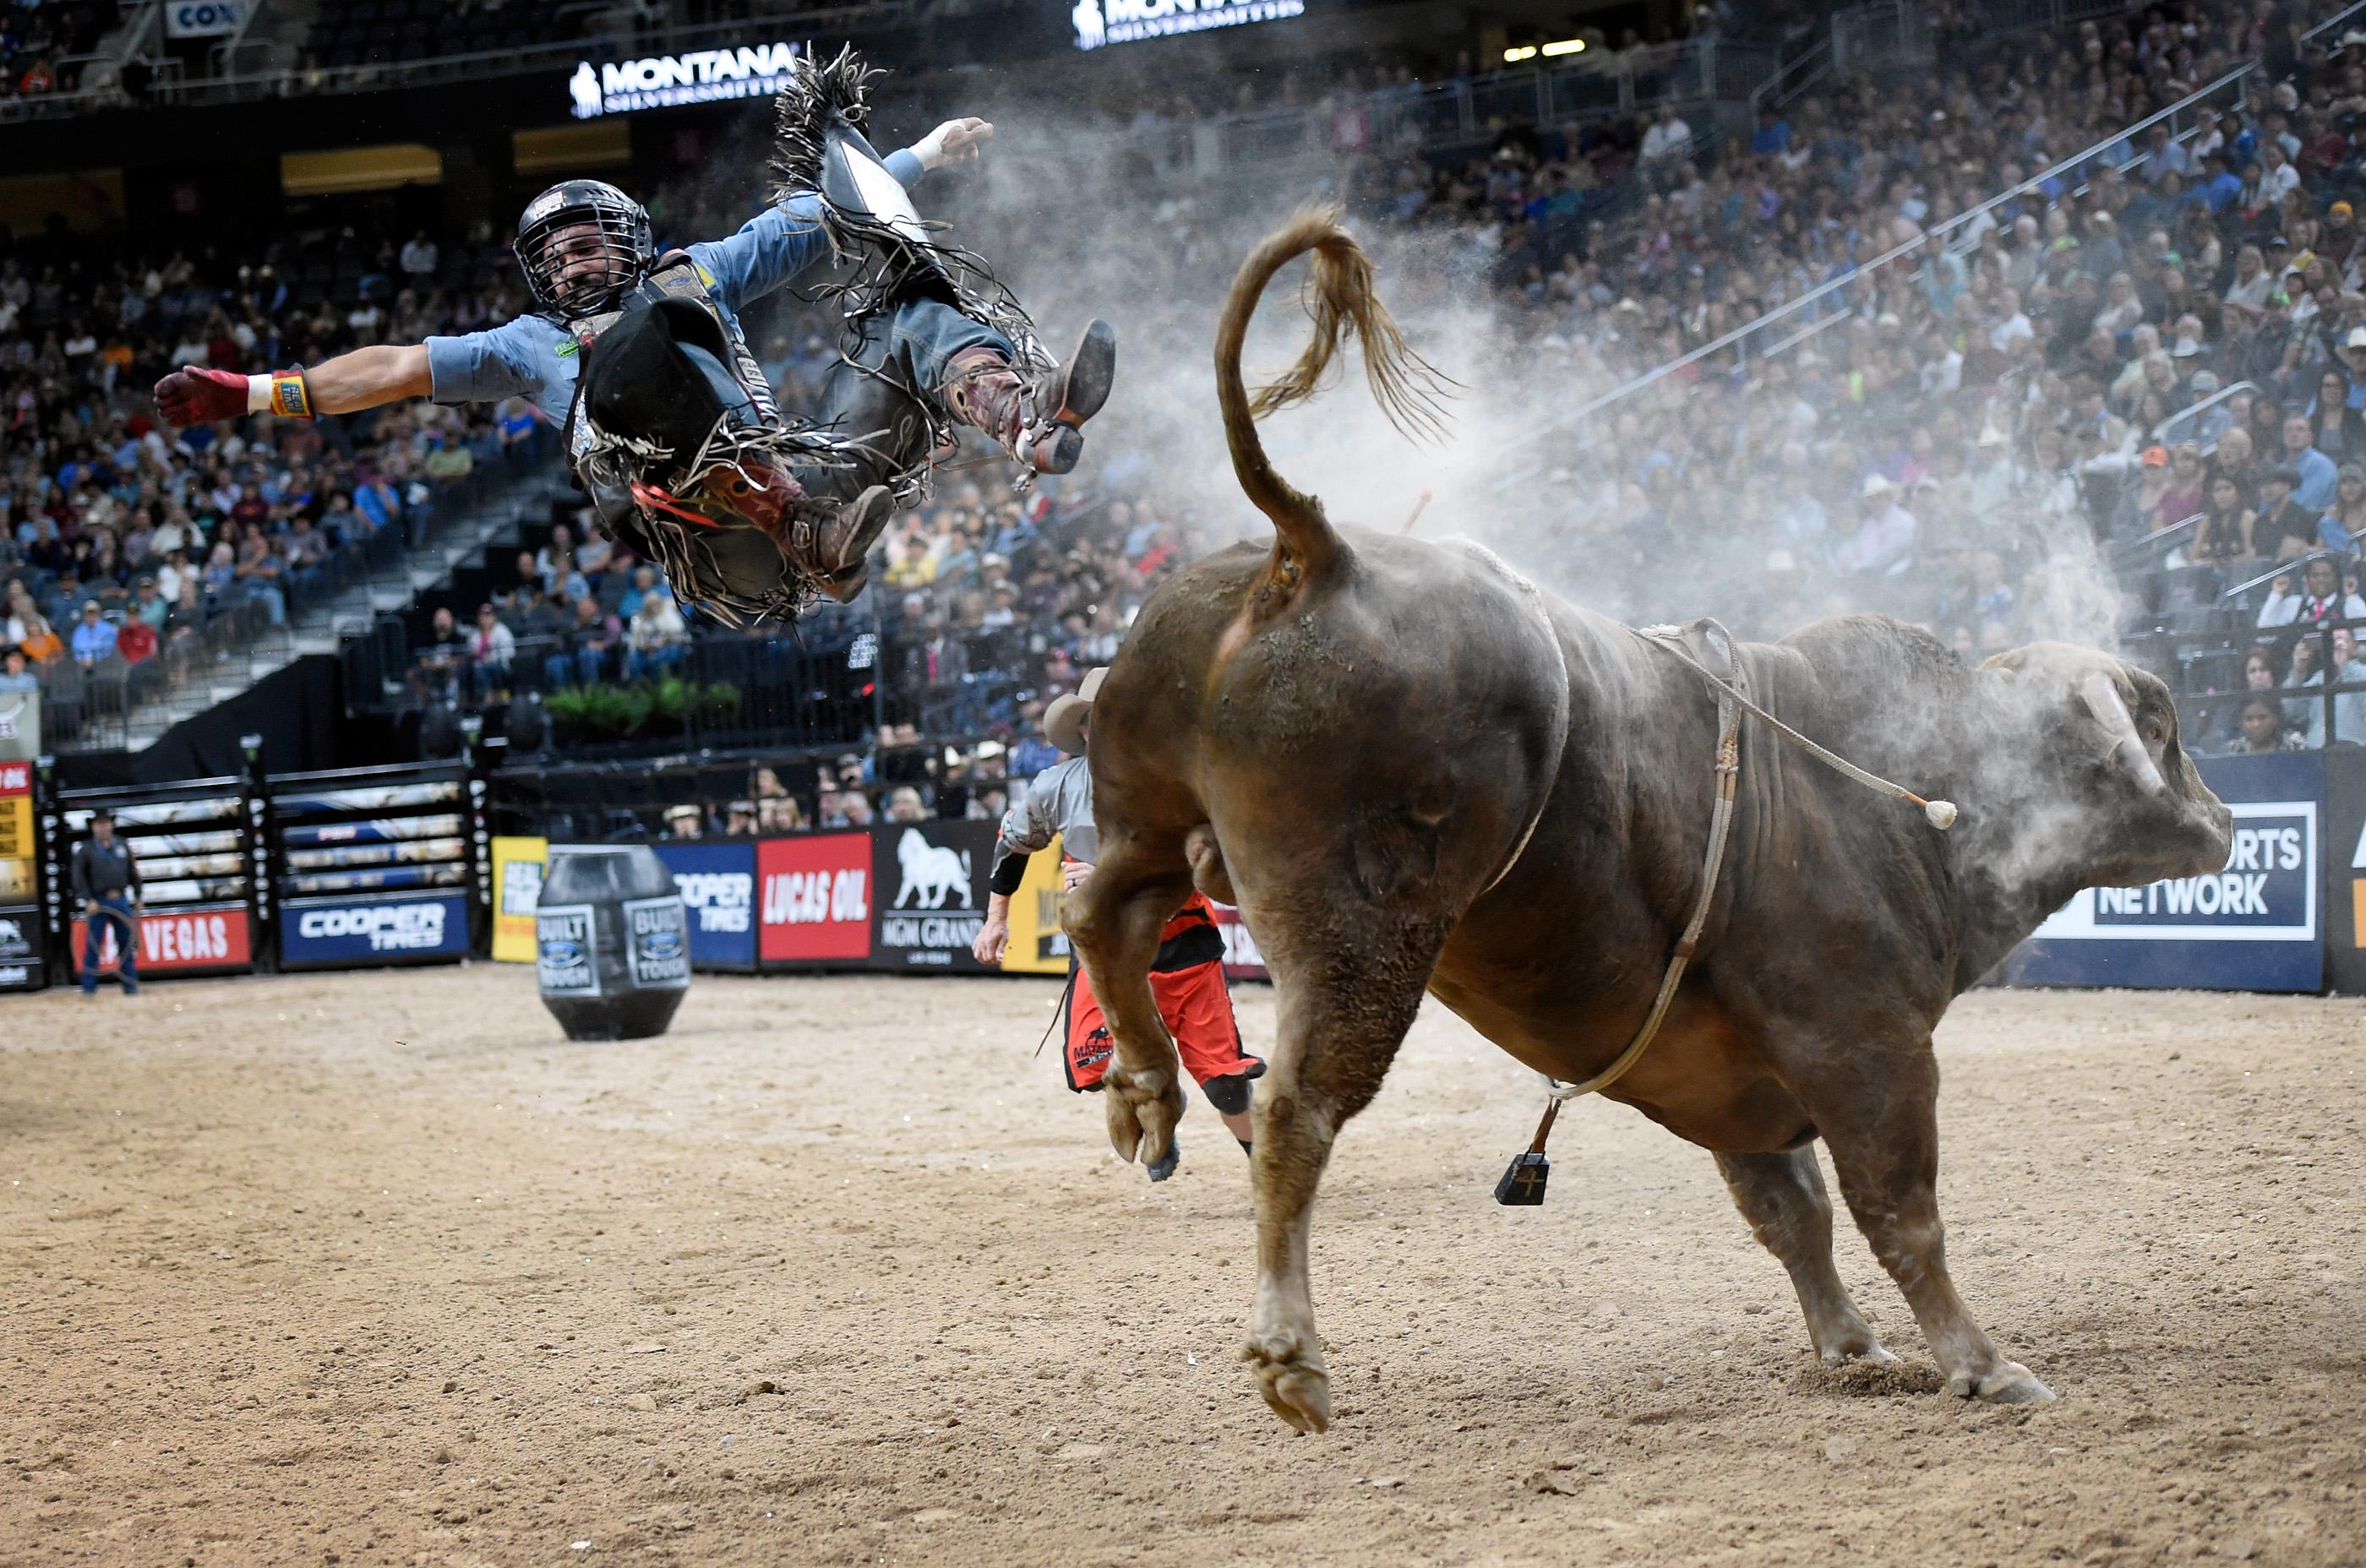 Rubens Barbosa jumps off Cochise during the final round at the PBR World Finals at T-Mobile Arena Sunday, Nov. 5, 2017, in Las Vegas. [David Becker/Las Vegas News Bureau]